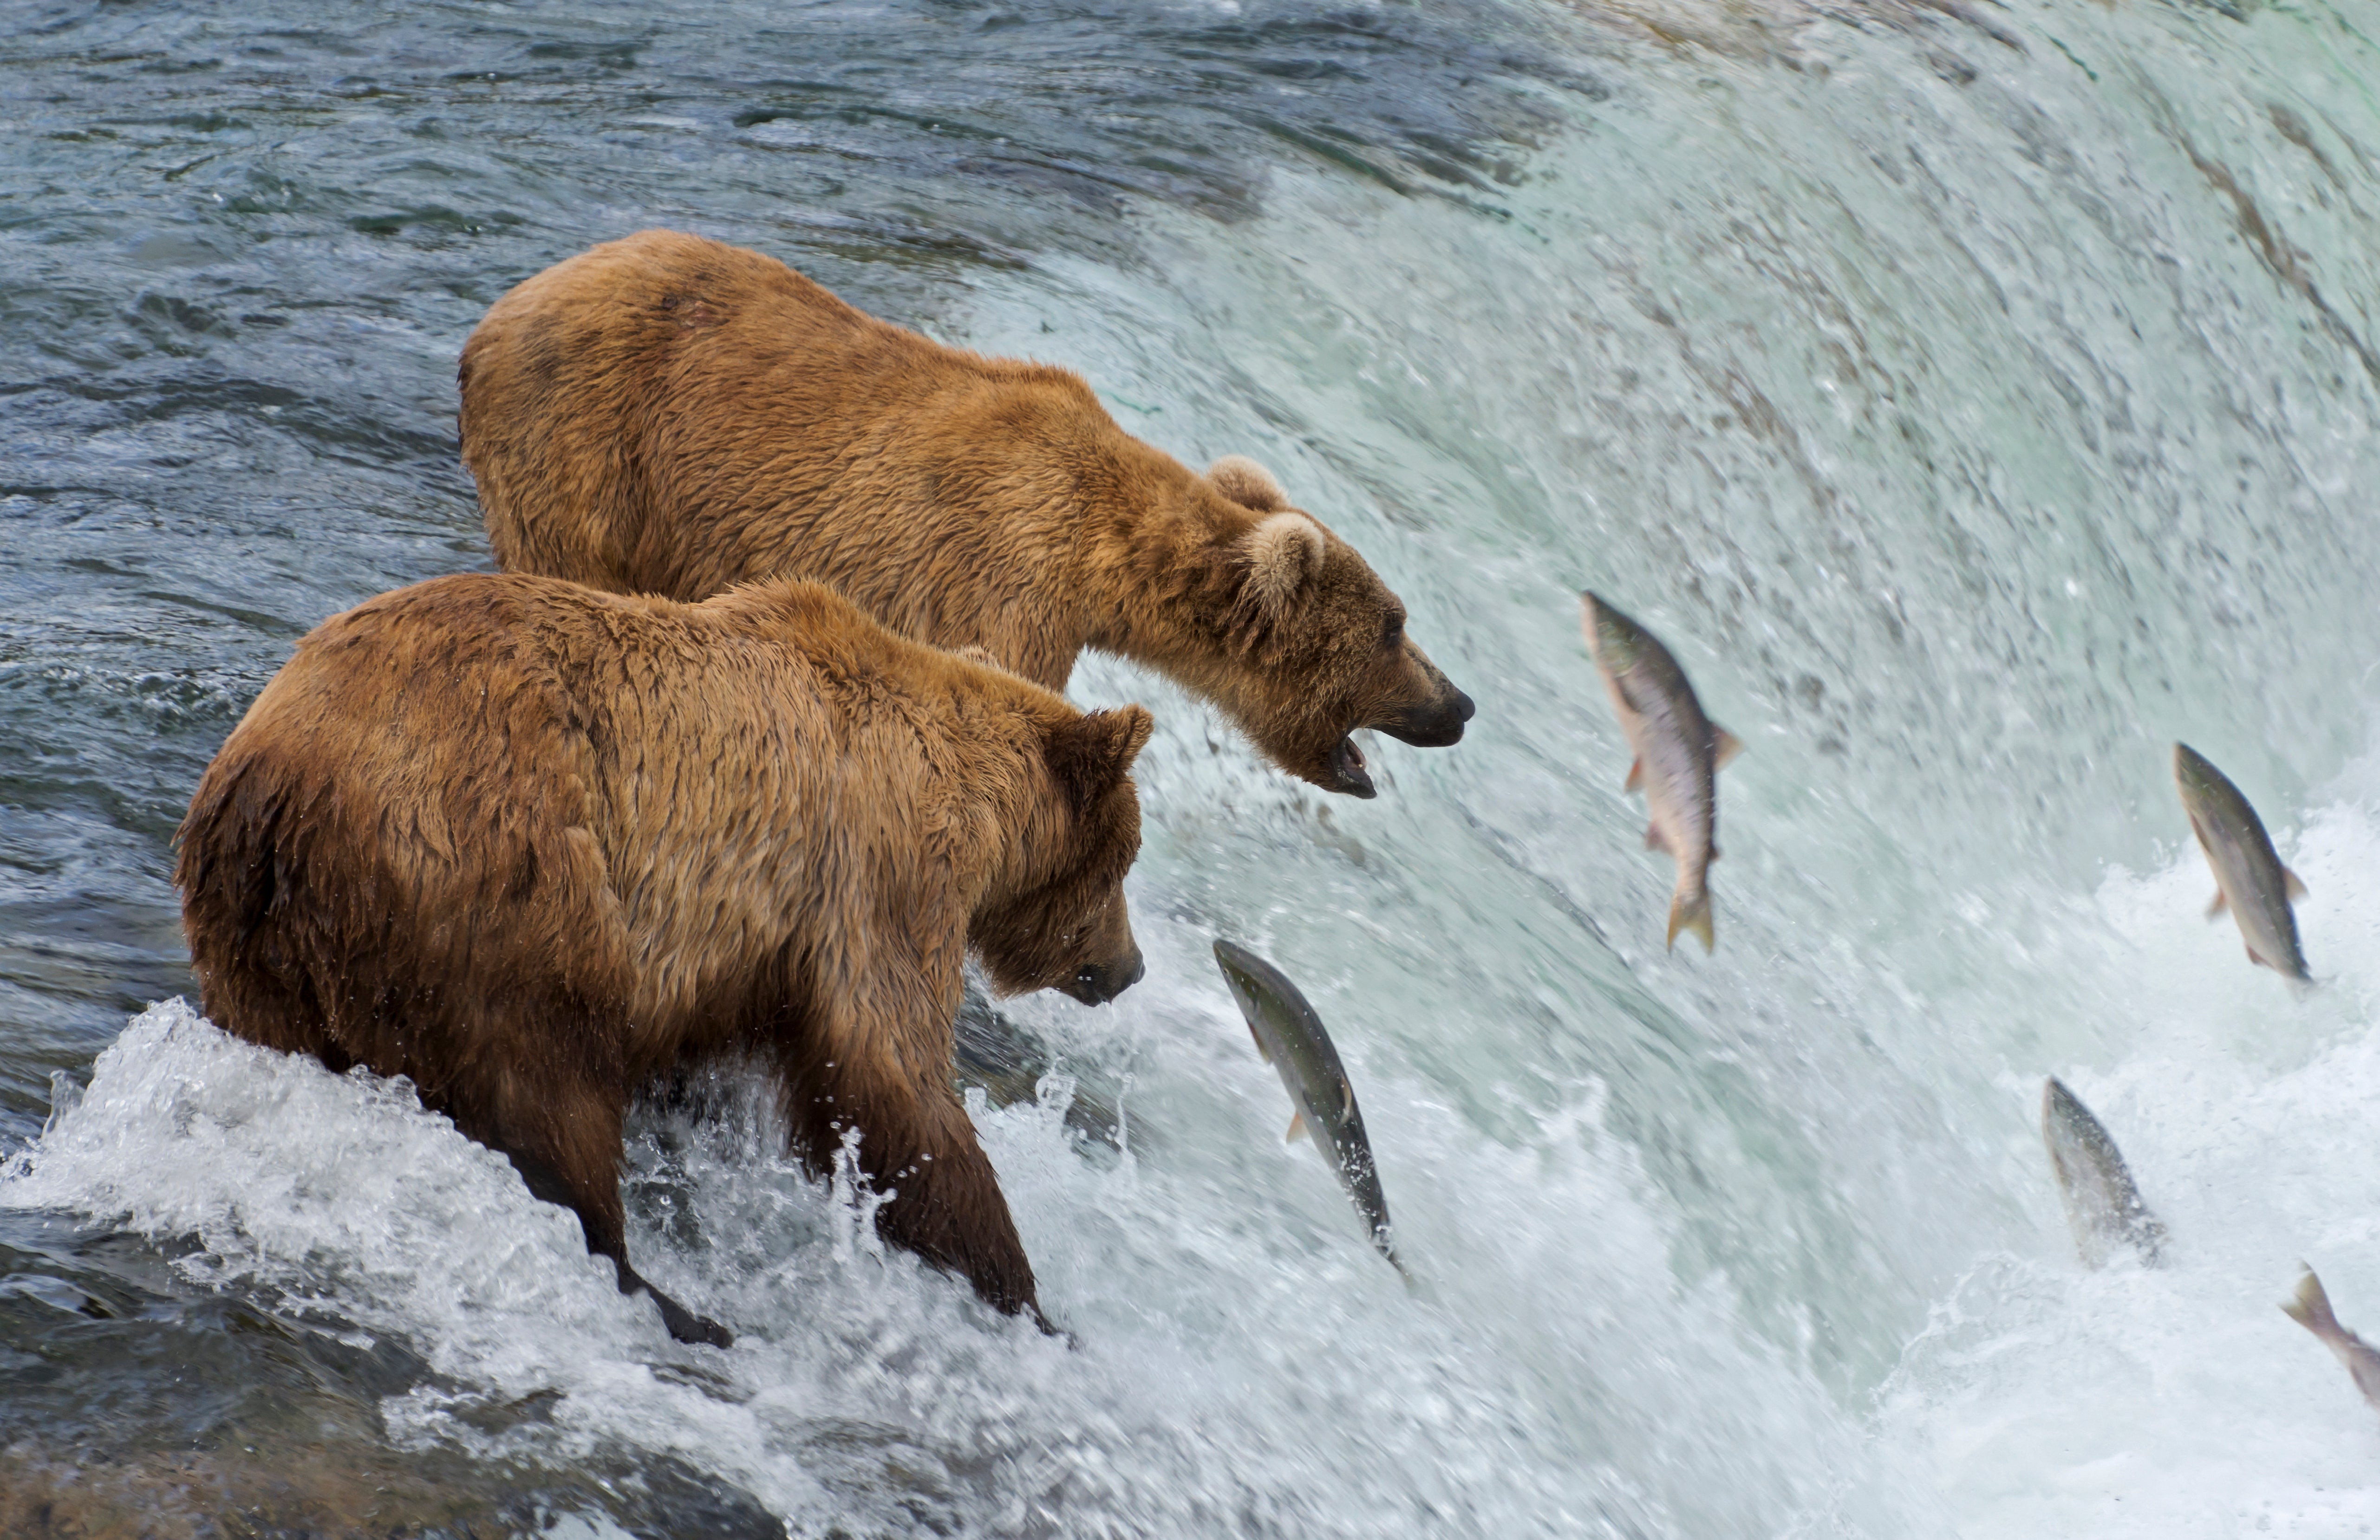 7981d689 e2a7 4ae7 af42 for Bear catching fish